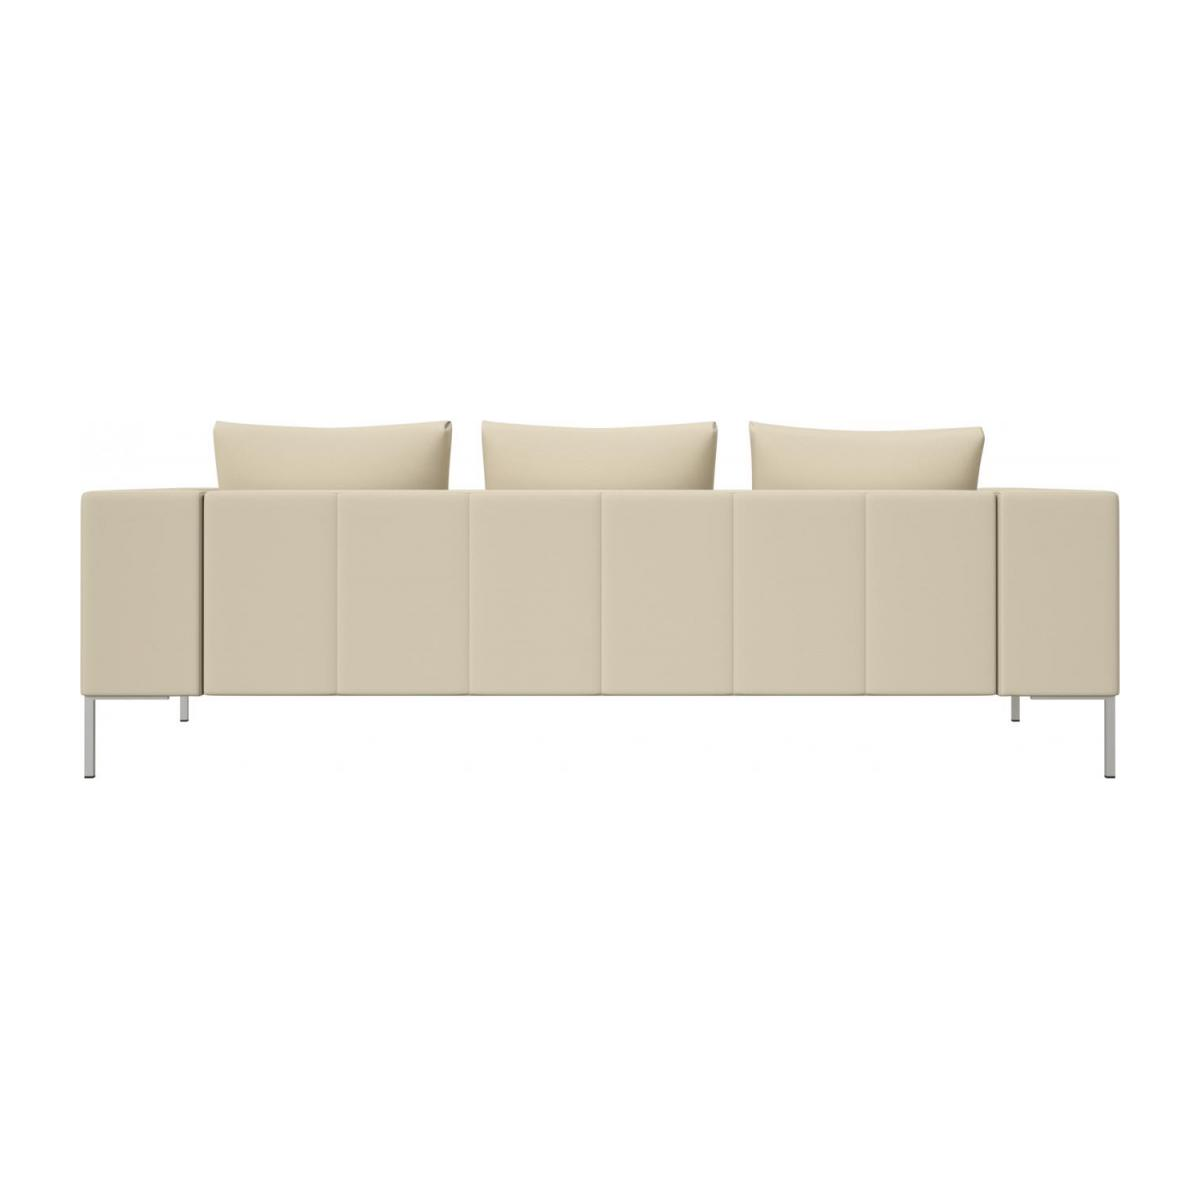 3 seater sofa in Savoy semi-aniline leather, off white n°3